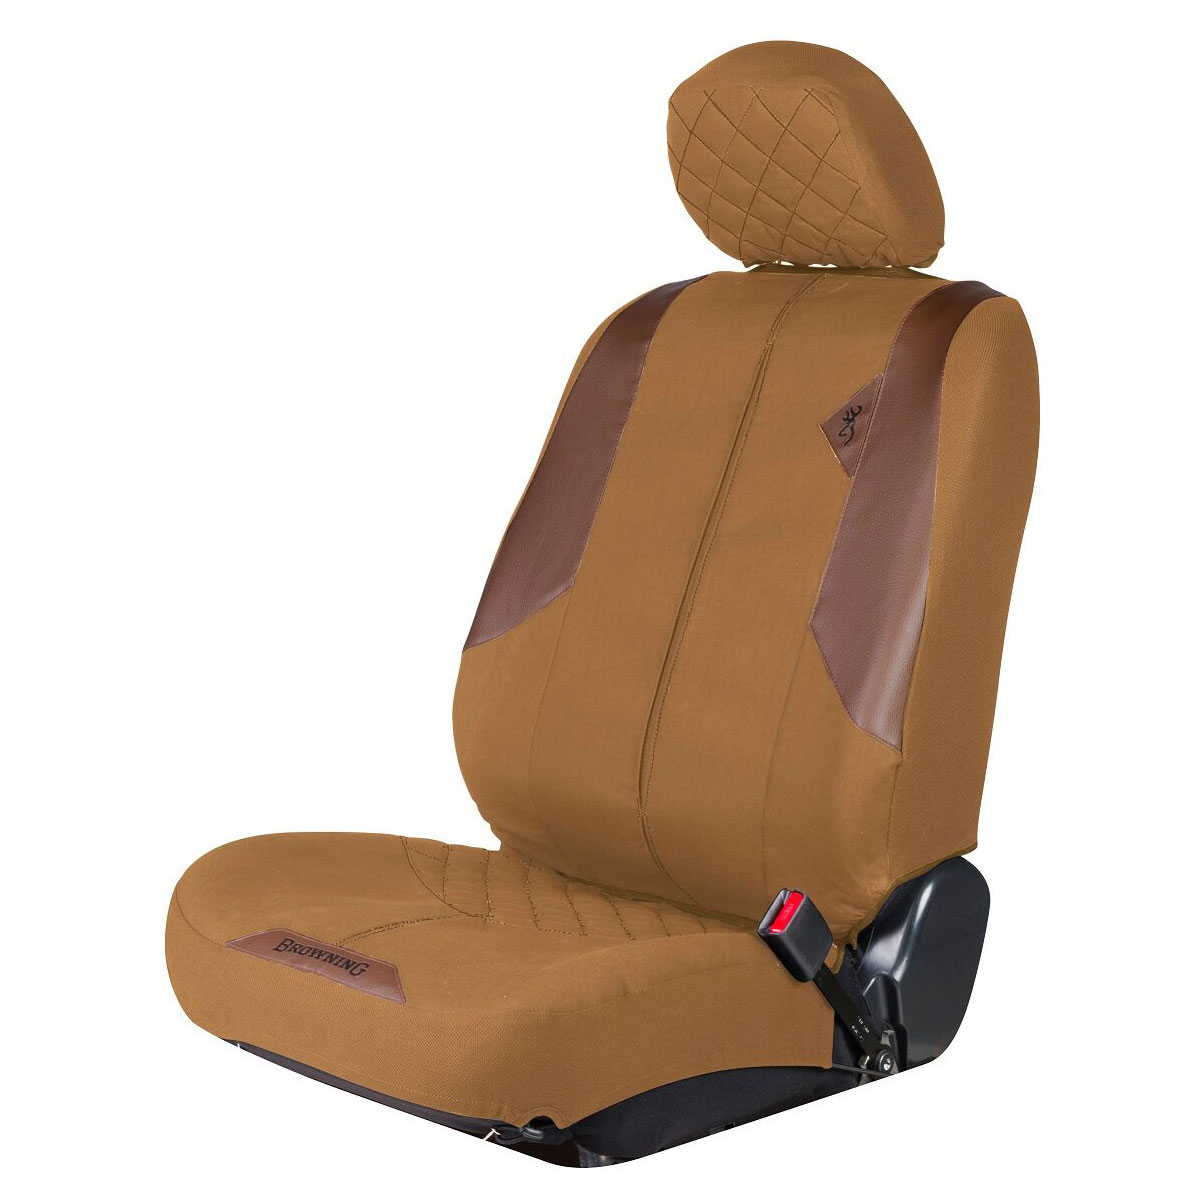 BROWNING HERITAGE SERIES LOW BACK 3 PIECE SEAT COVER main photo.